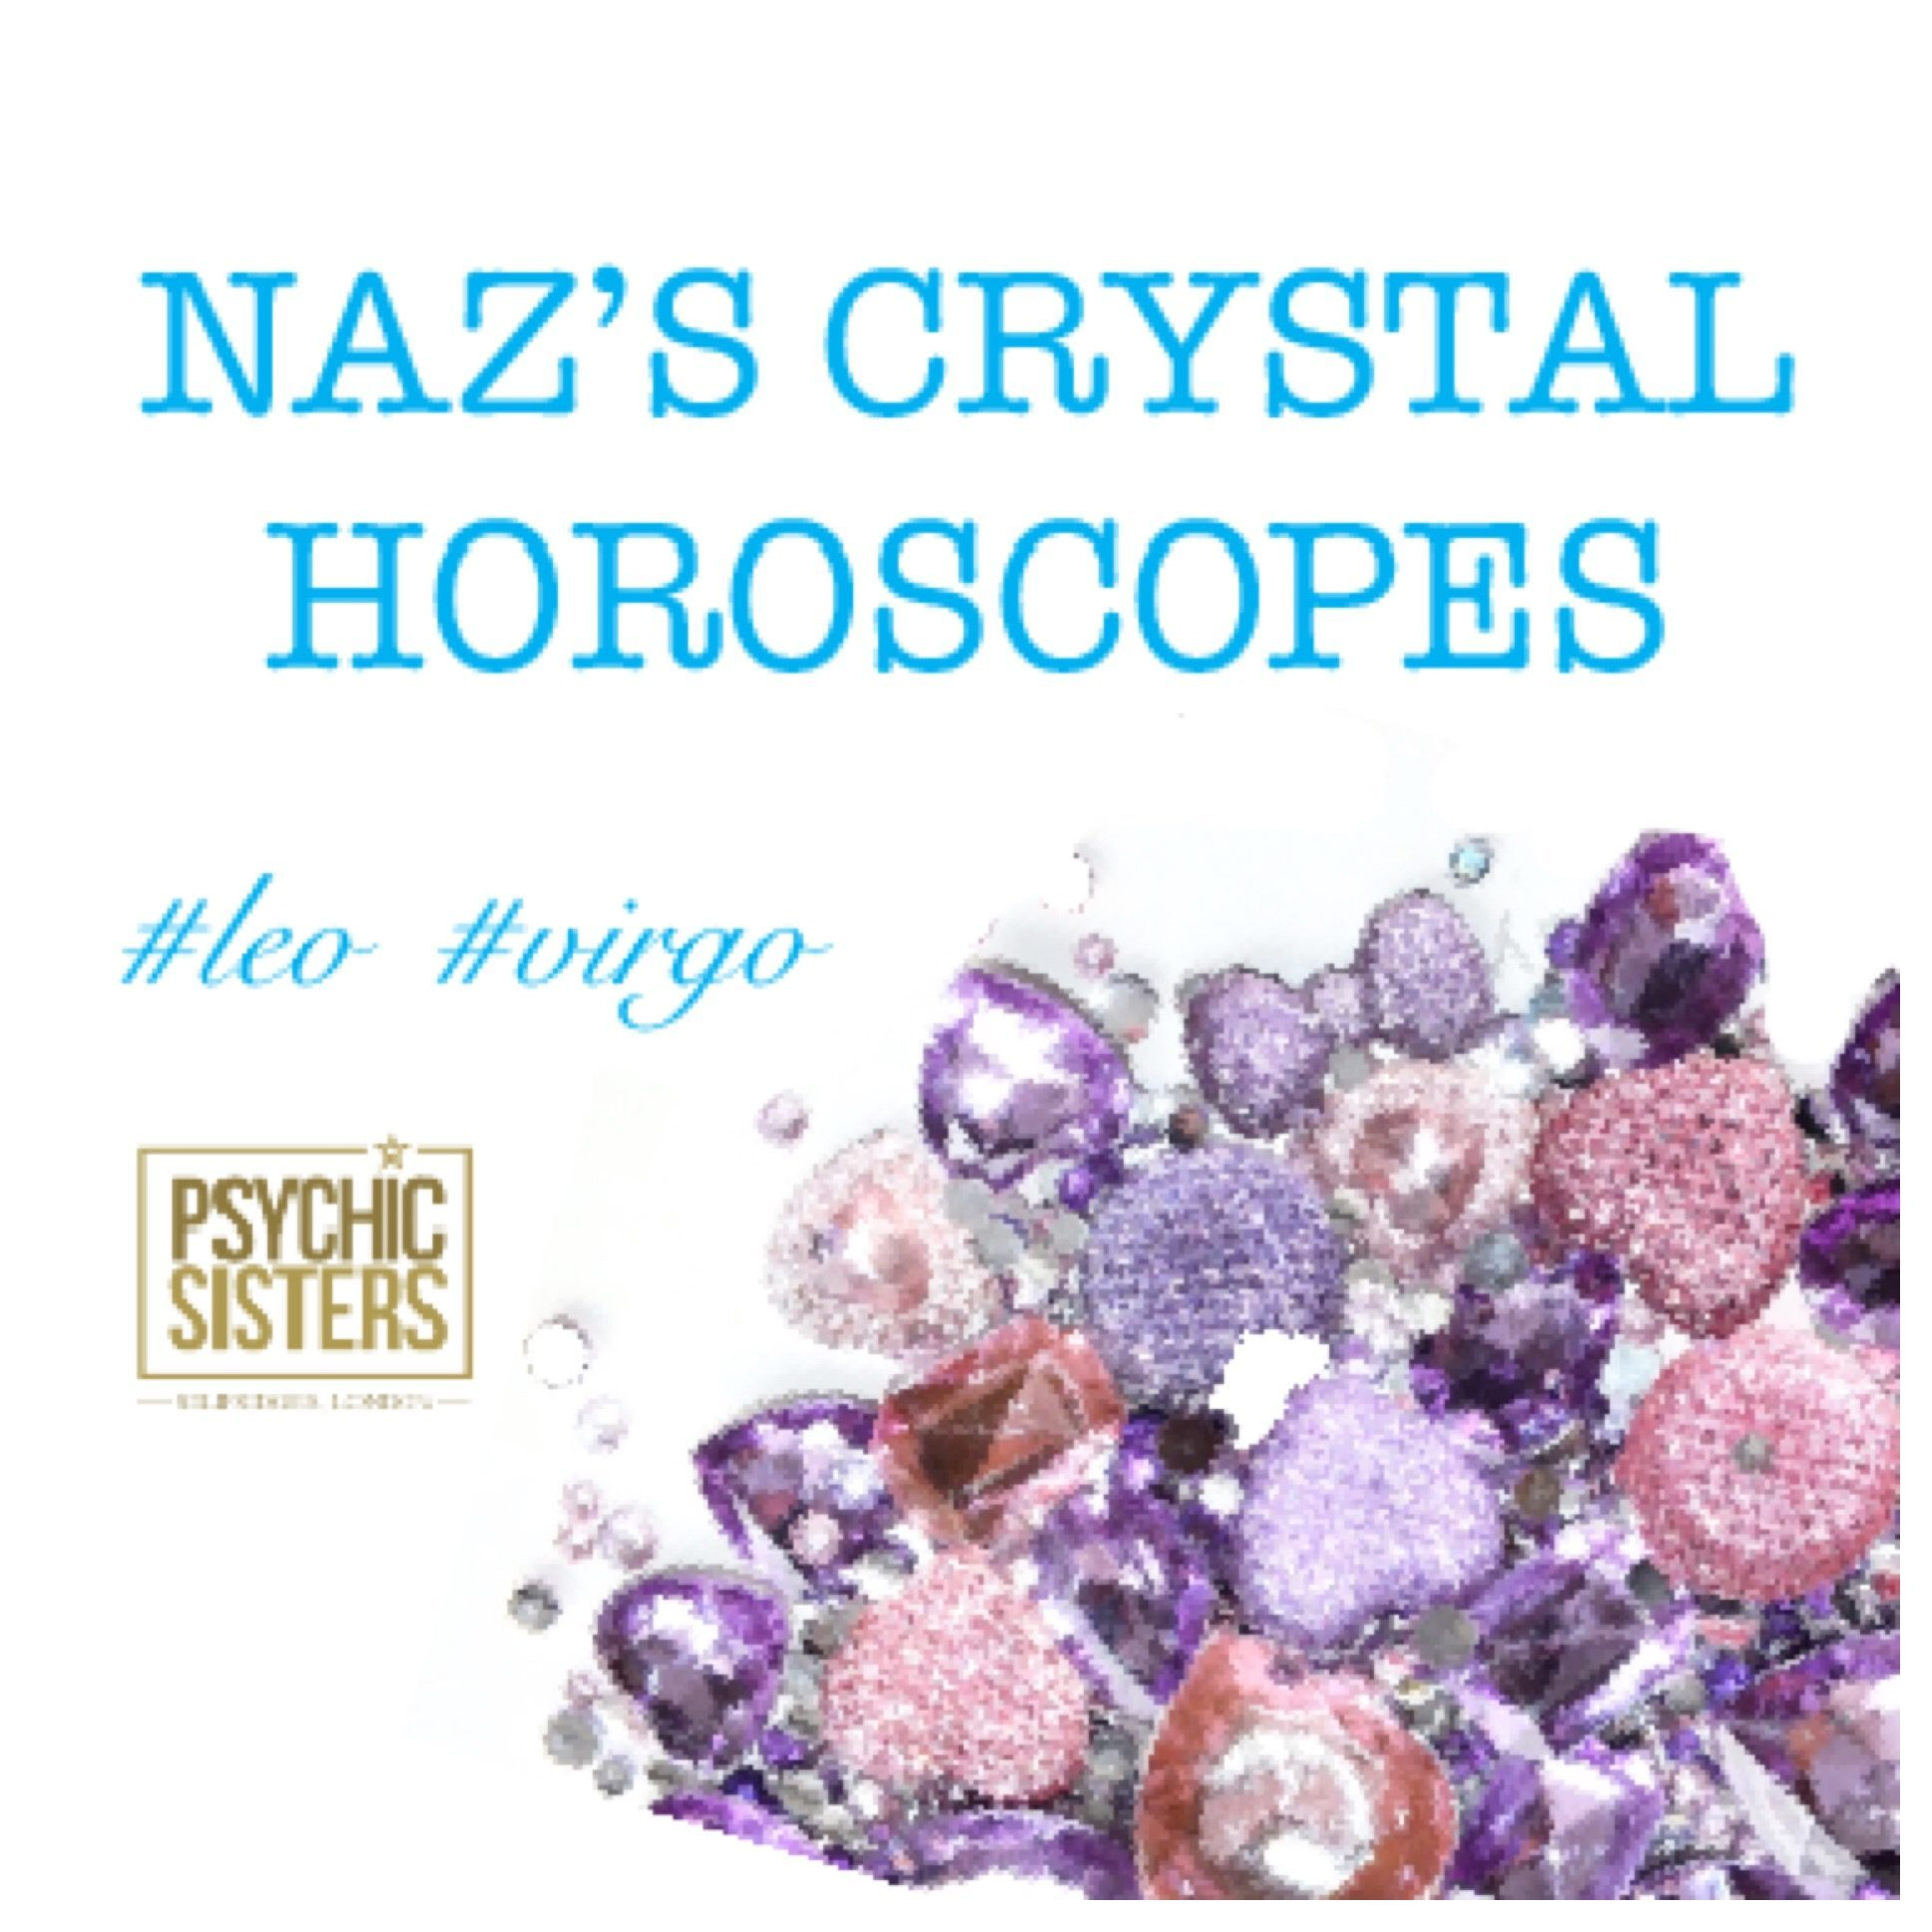 Naz's crystal horoscopes 15th - 21st April 2018